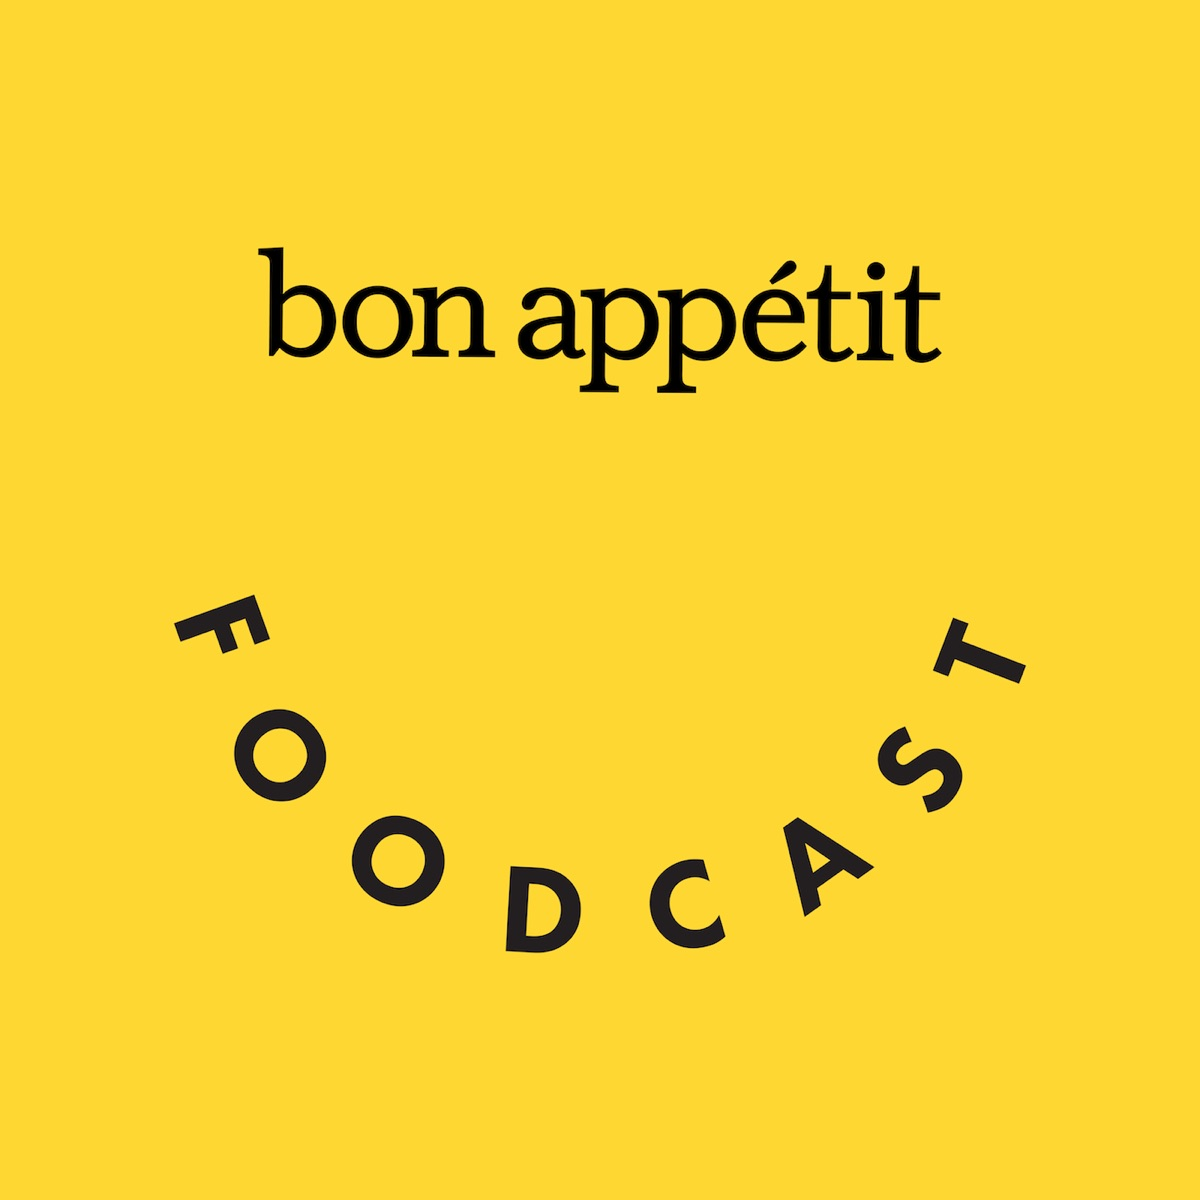 Episode 274: Not All Bread Is Yeasted Bread